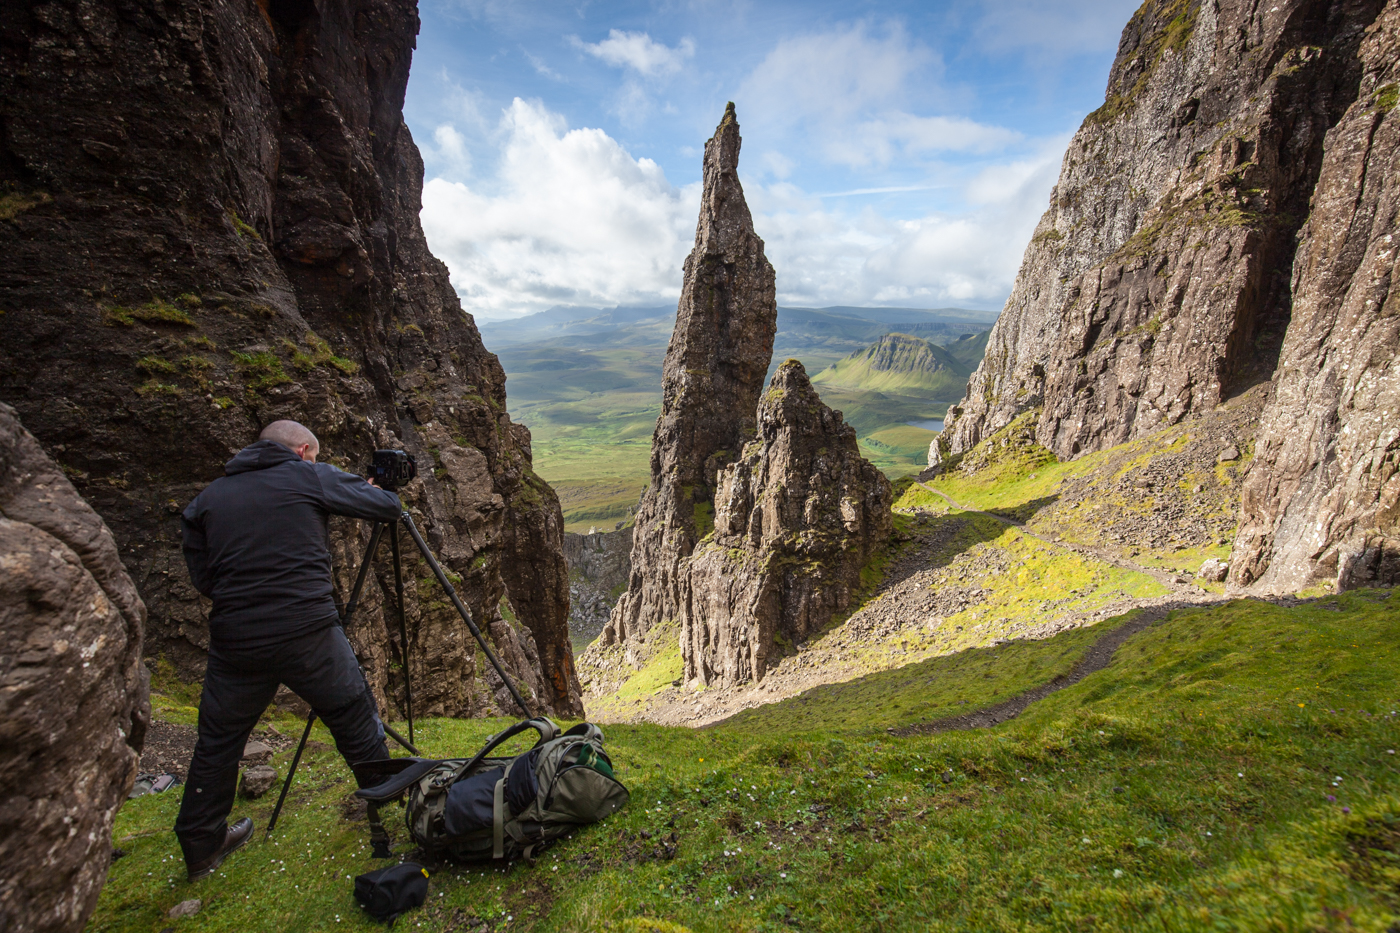 isle-of-skye-photography-workshop-may-bank-holiday-adventure